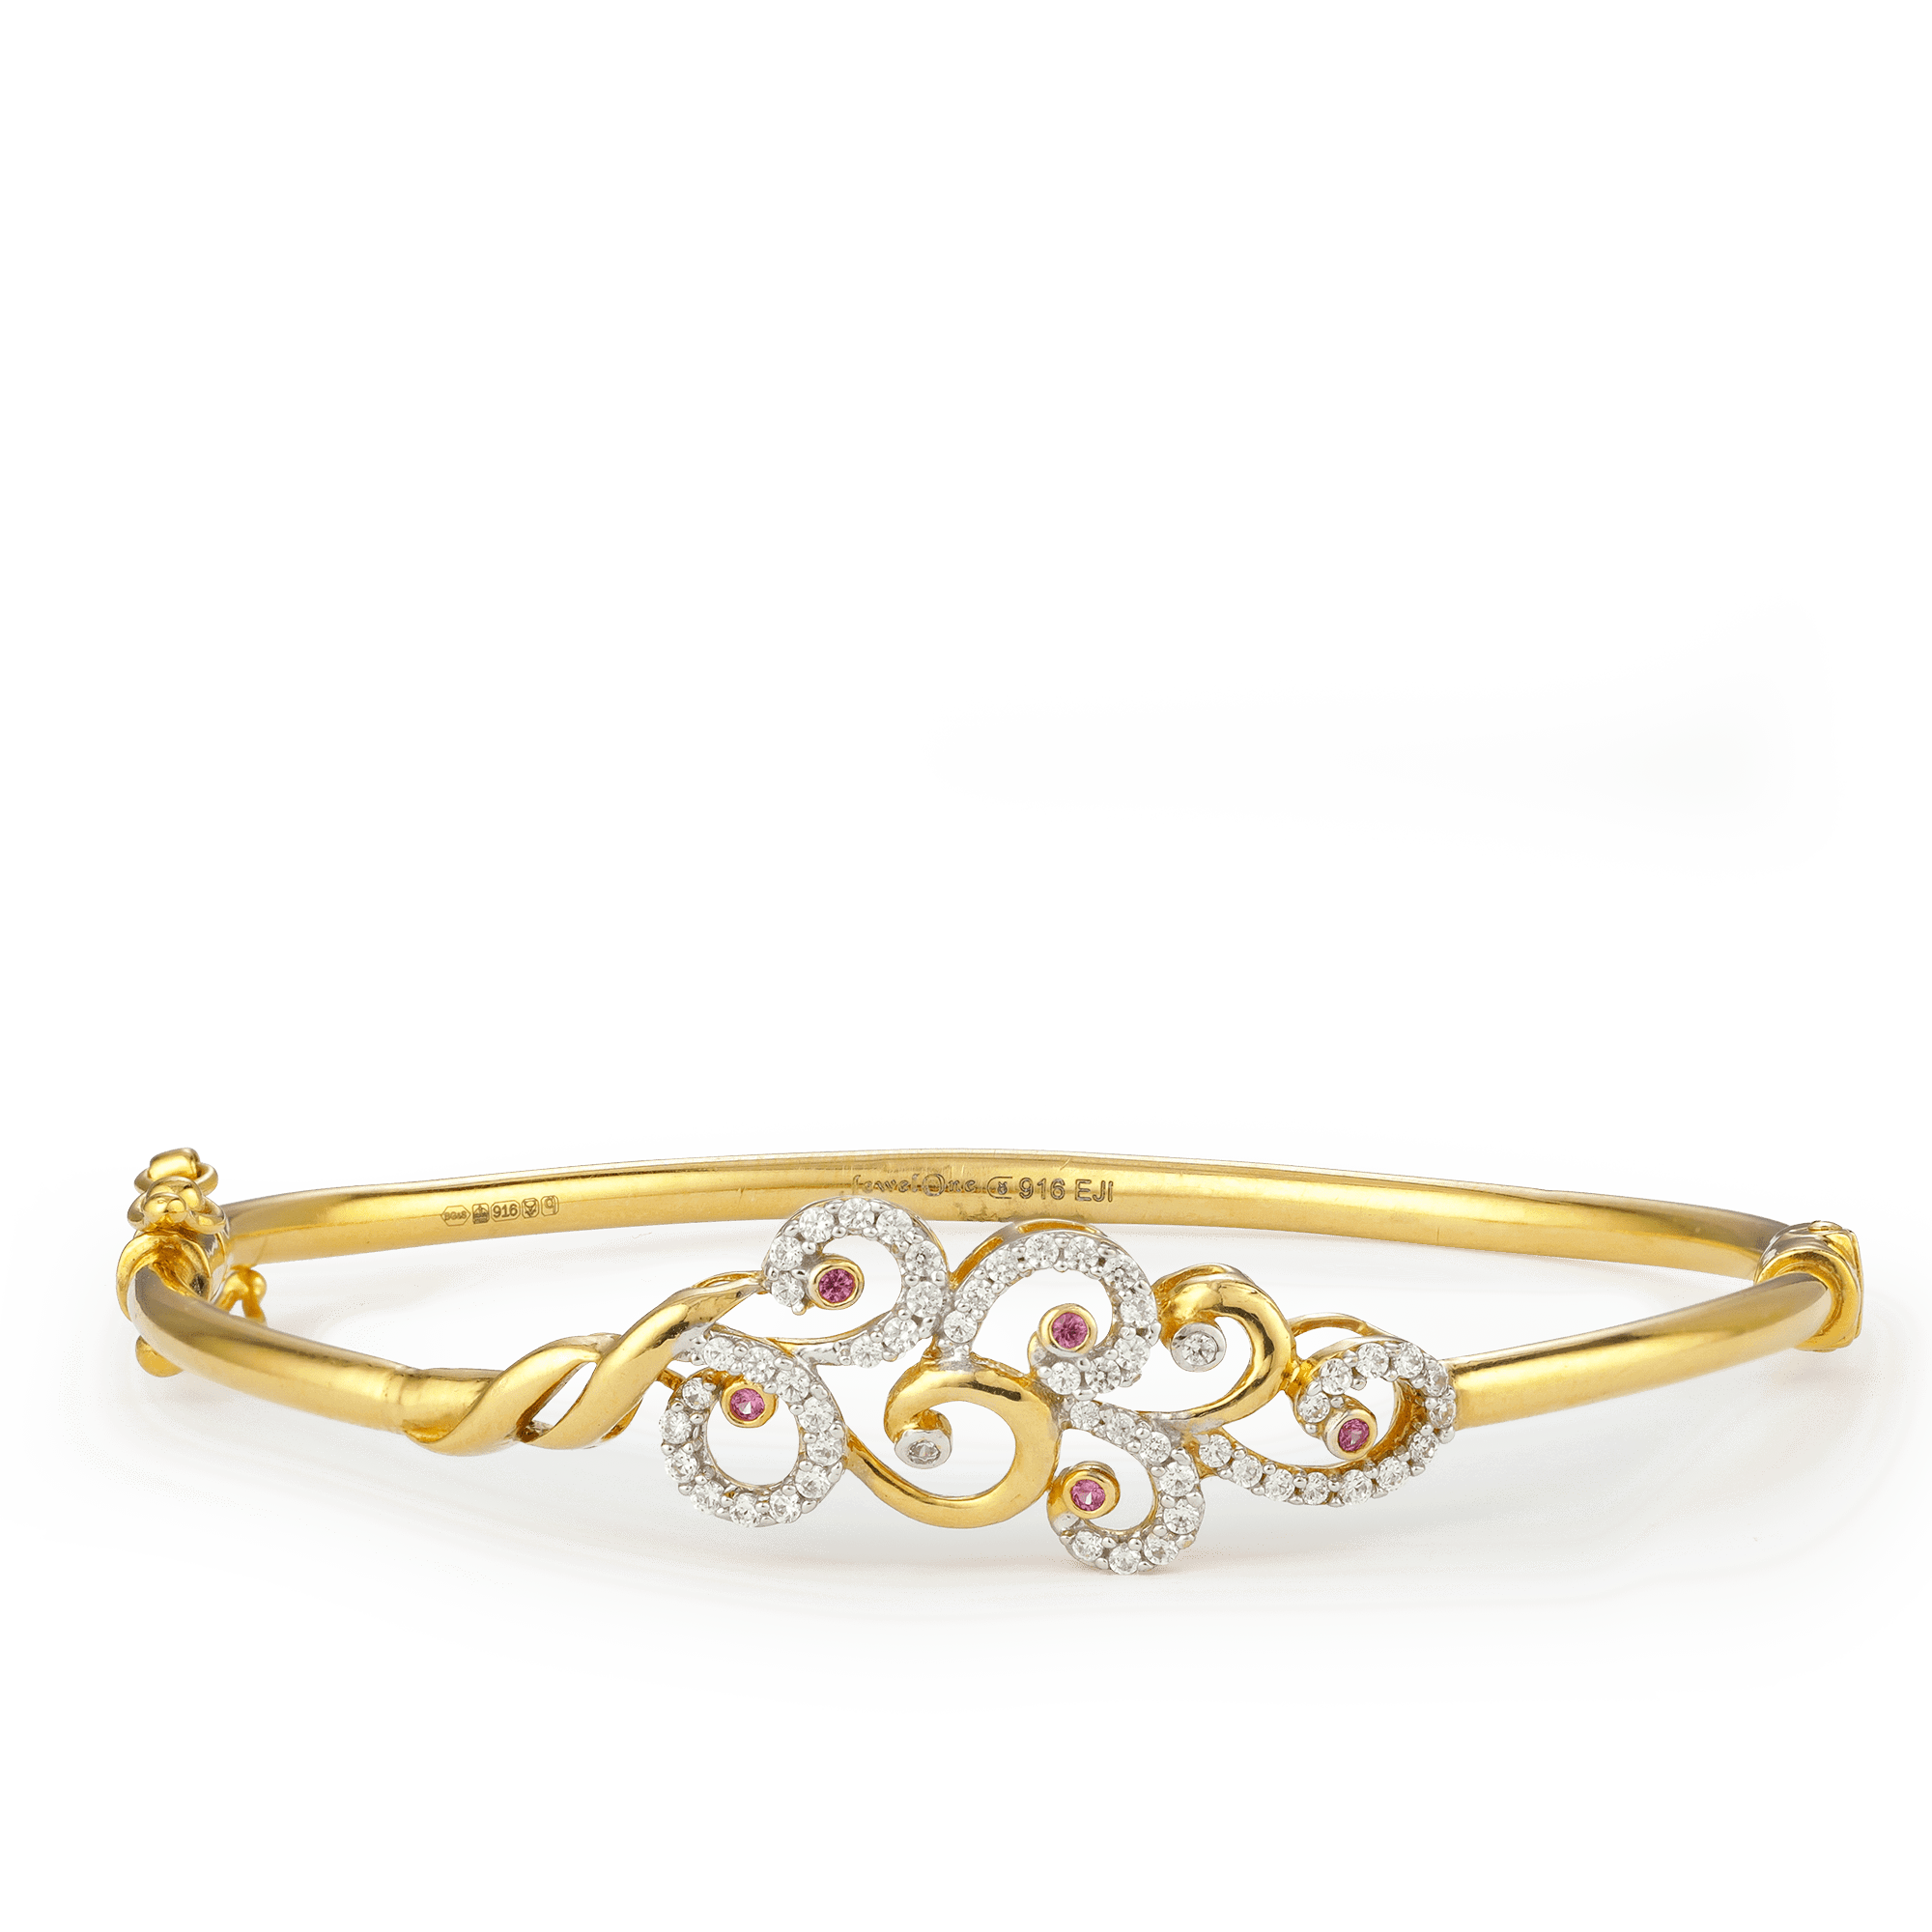 22ct Gold Bangle Bracelet 23391_1